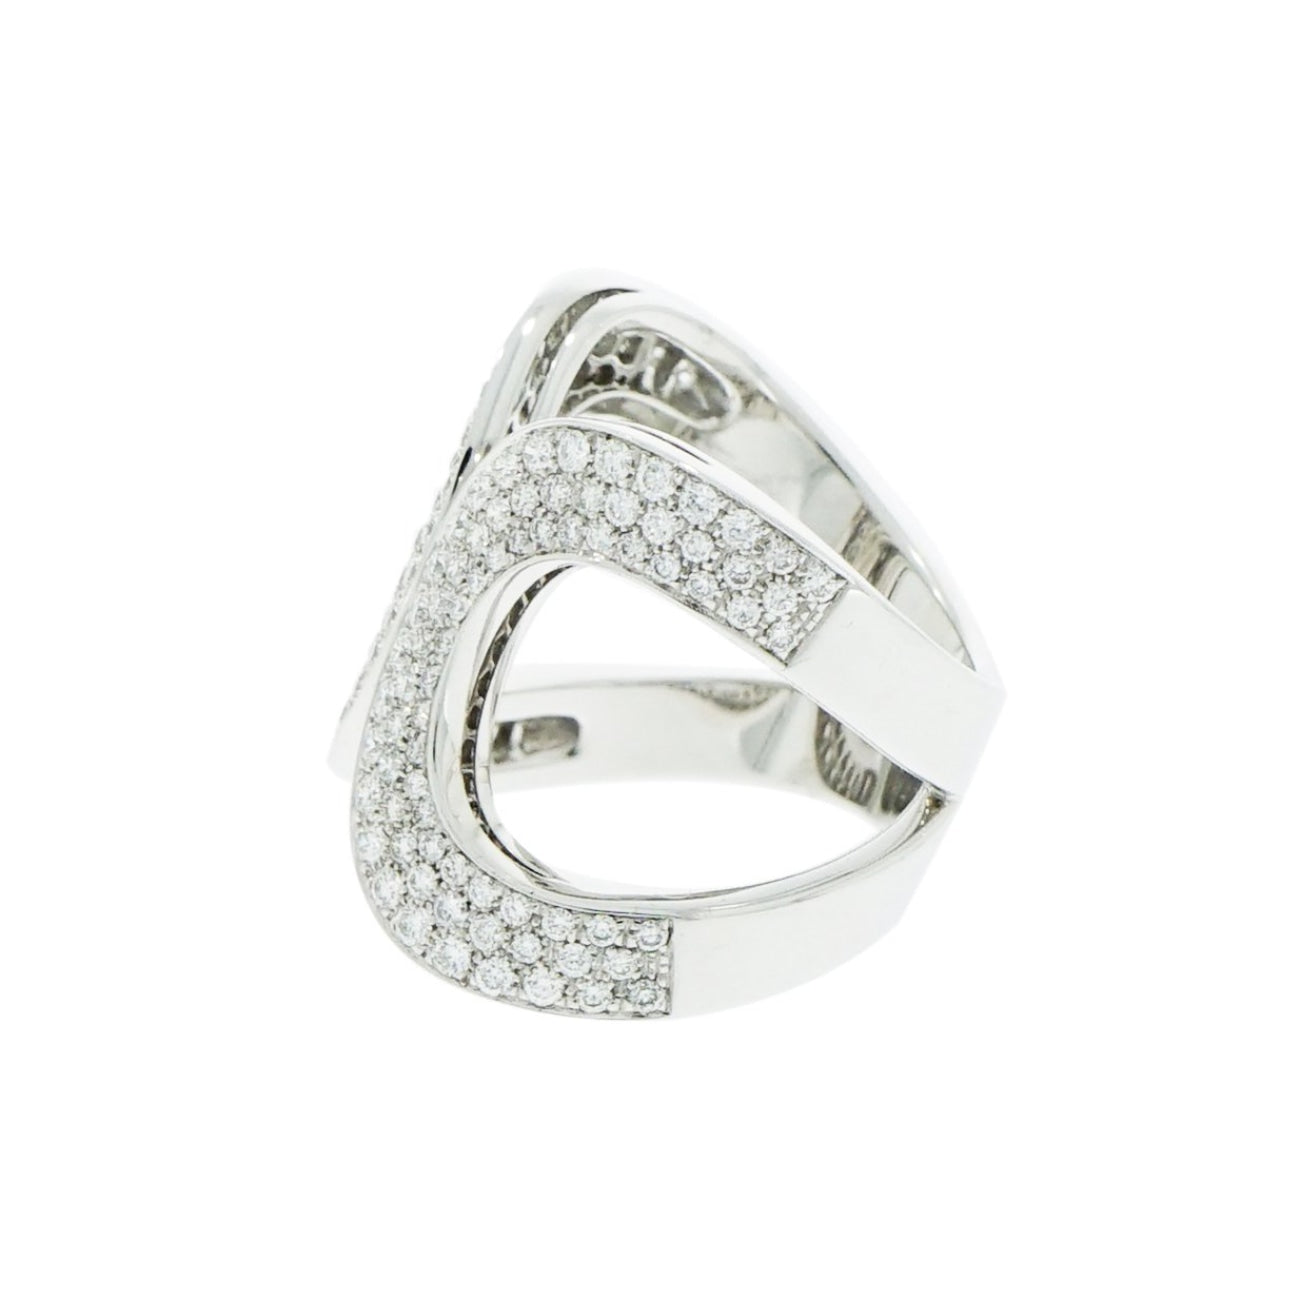 New Italian Art Jewelry - Diamond Pave Ring | Manfredi Jewels